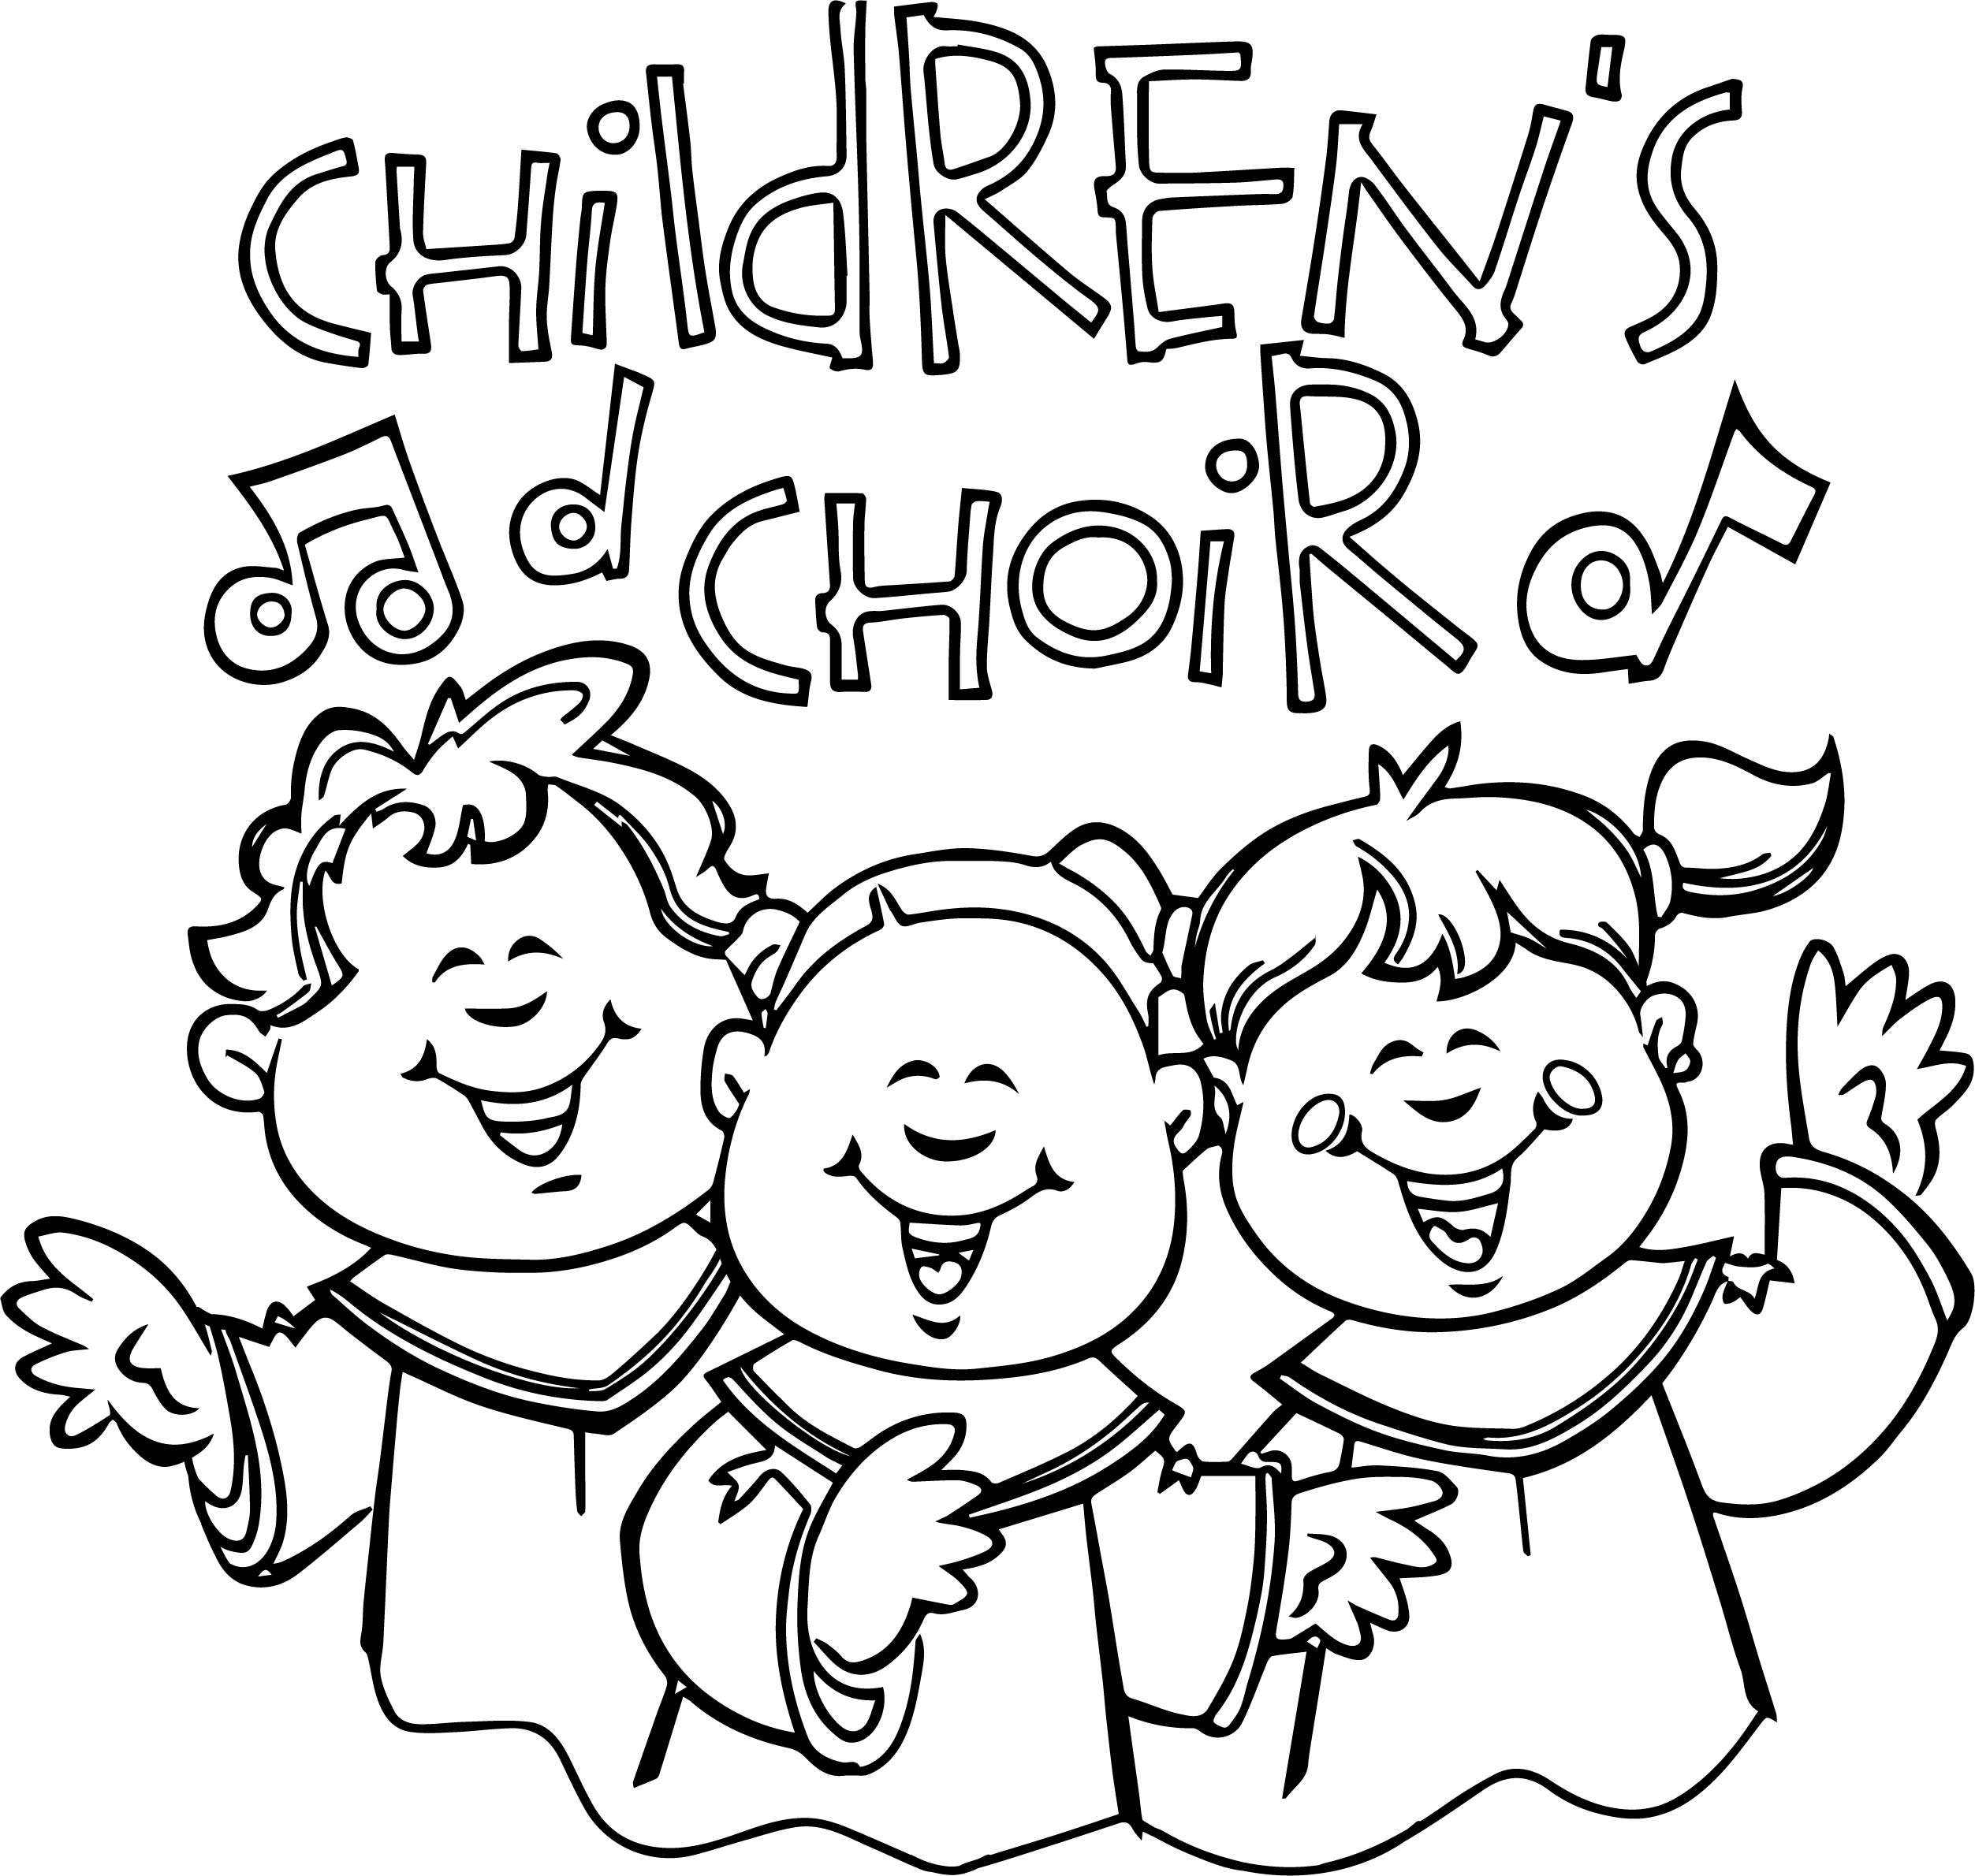 Children Singing In Church Coloring Page  Wecoloringpage